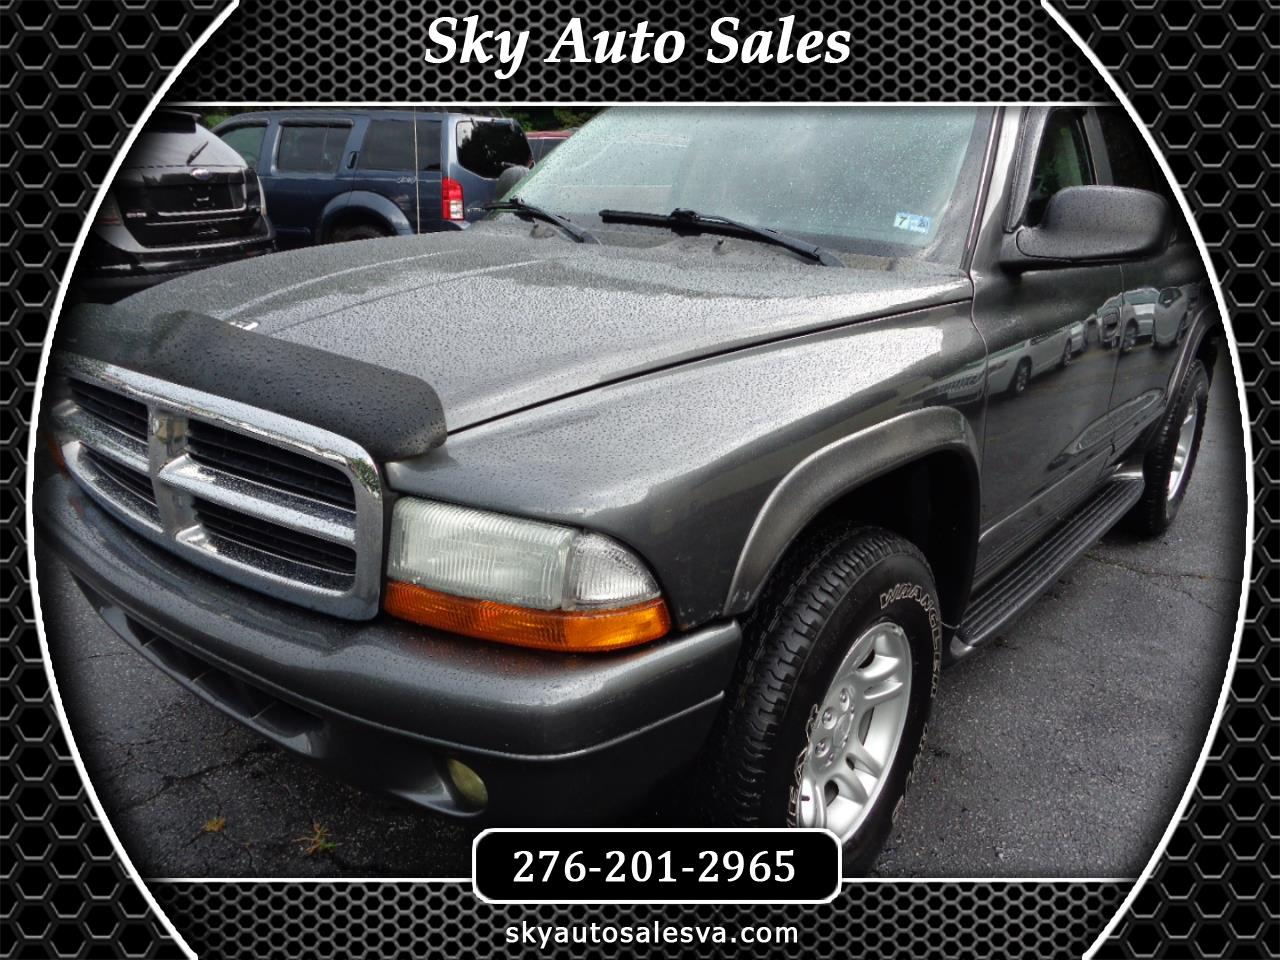 Sky Auto Sales >> Used Cars For Sale Martinsville Va 24112 Sky Auto Sales